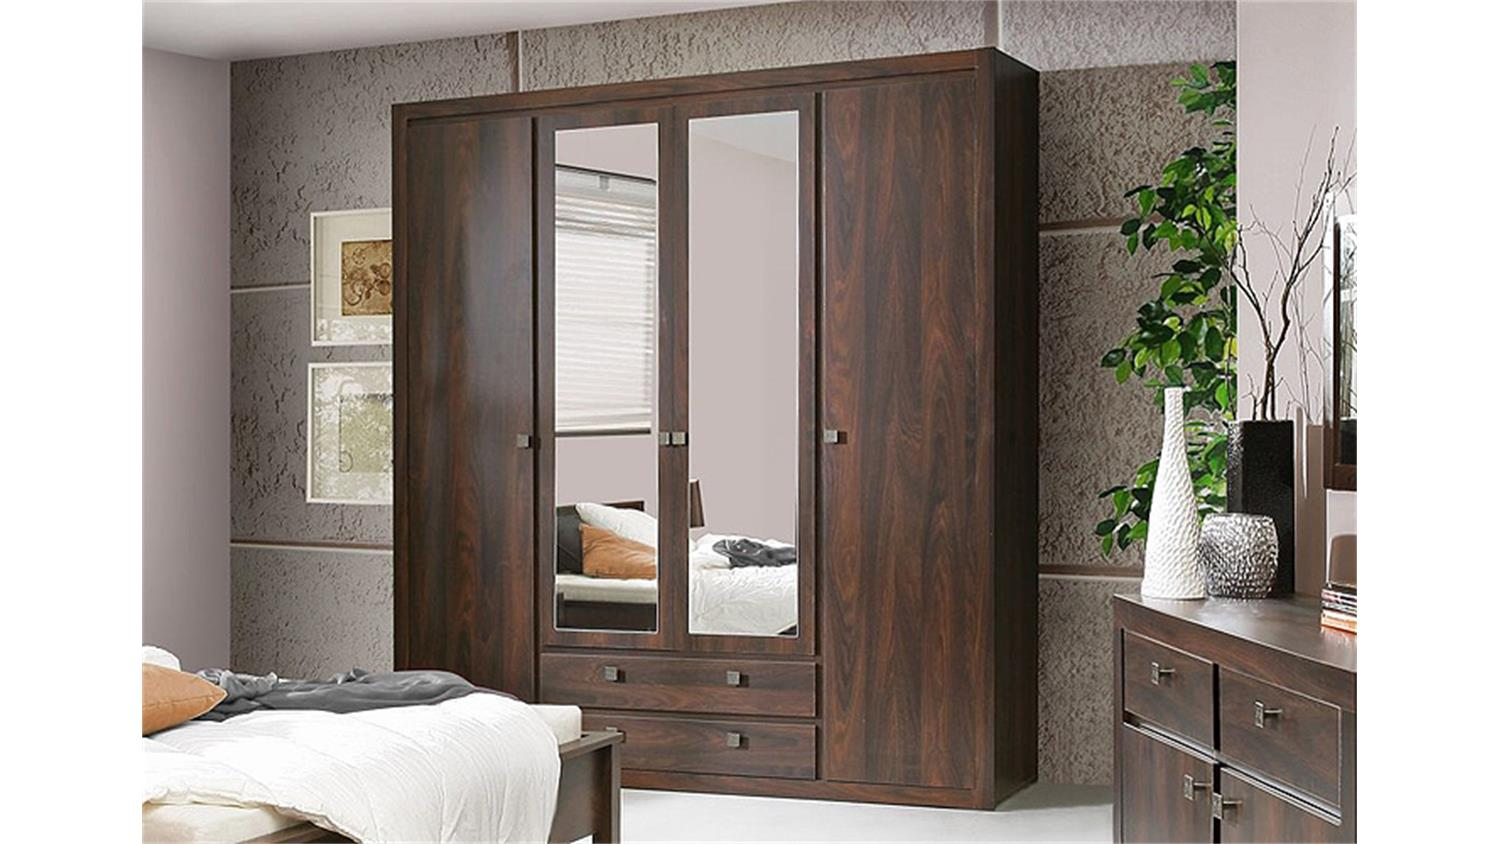 m bel kolonialstil dunkel. Black Bedroom Furniture Sets. Home Design Ideas